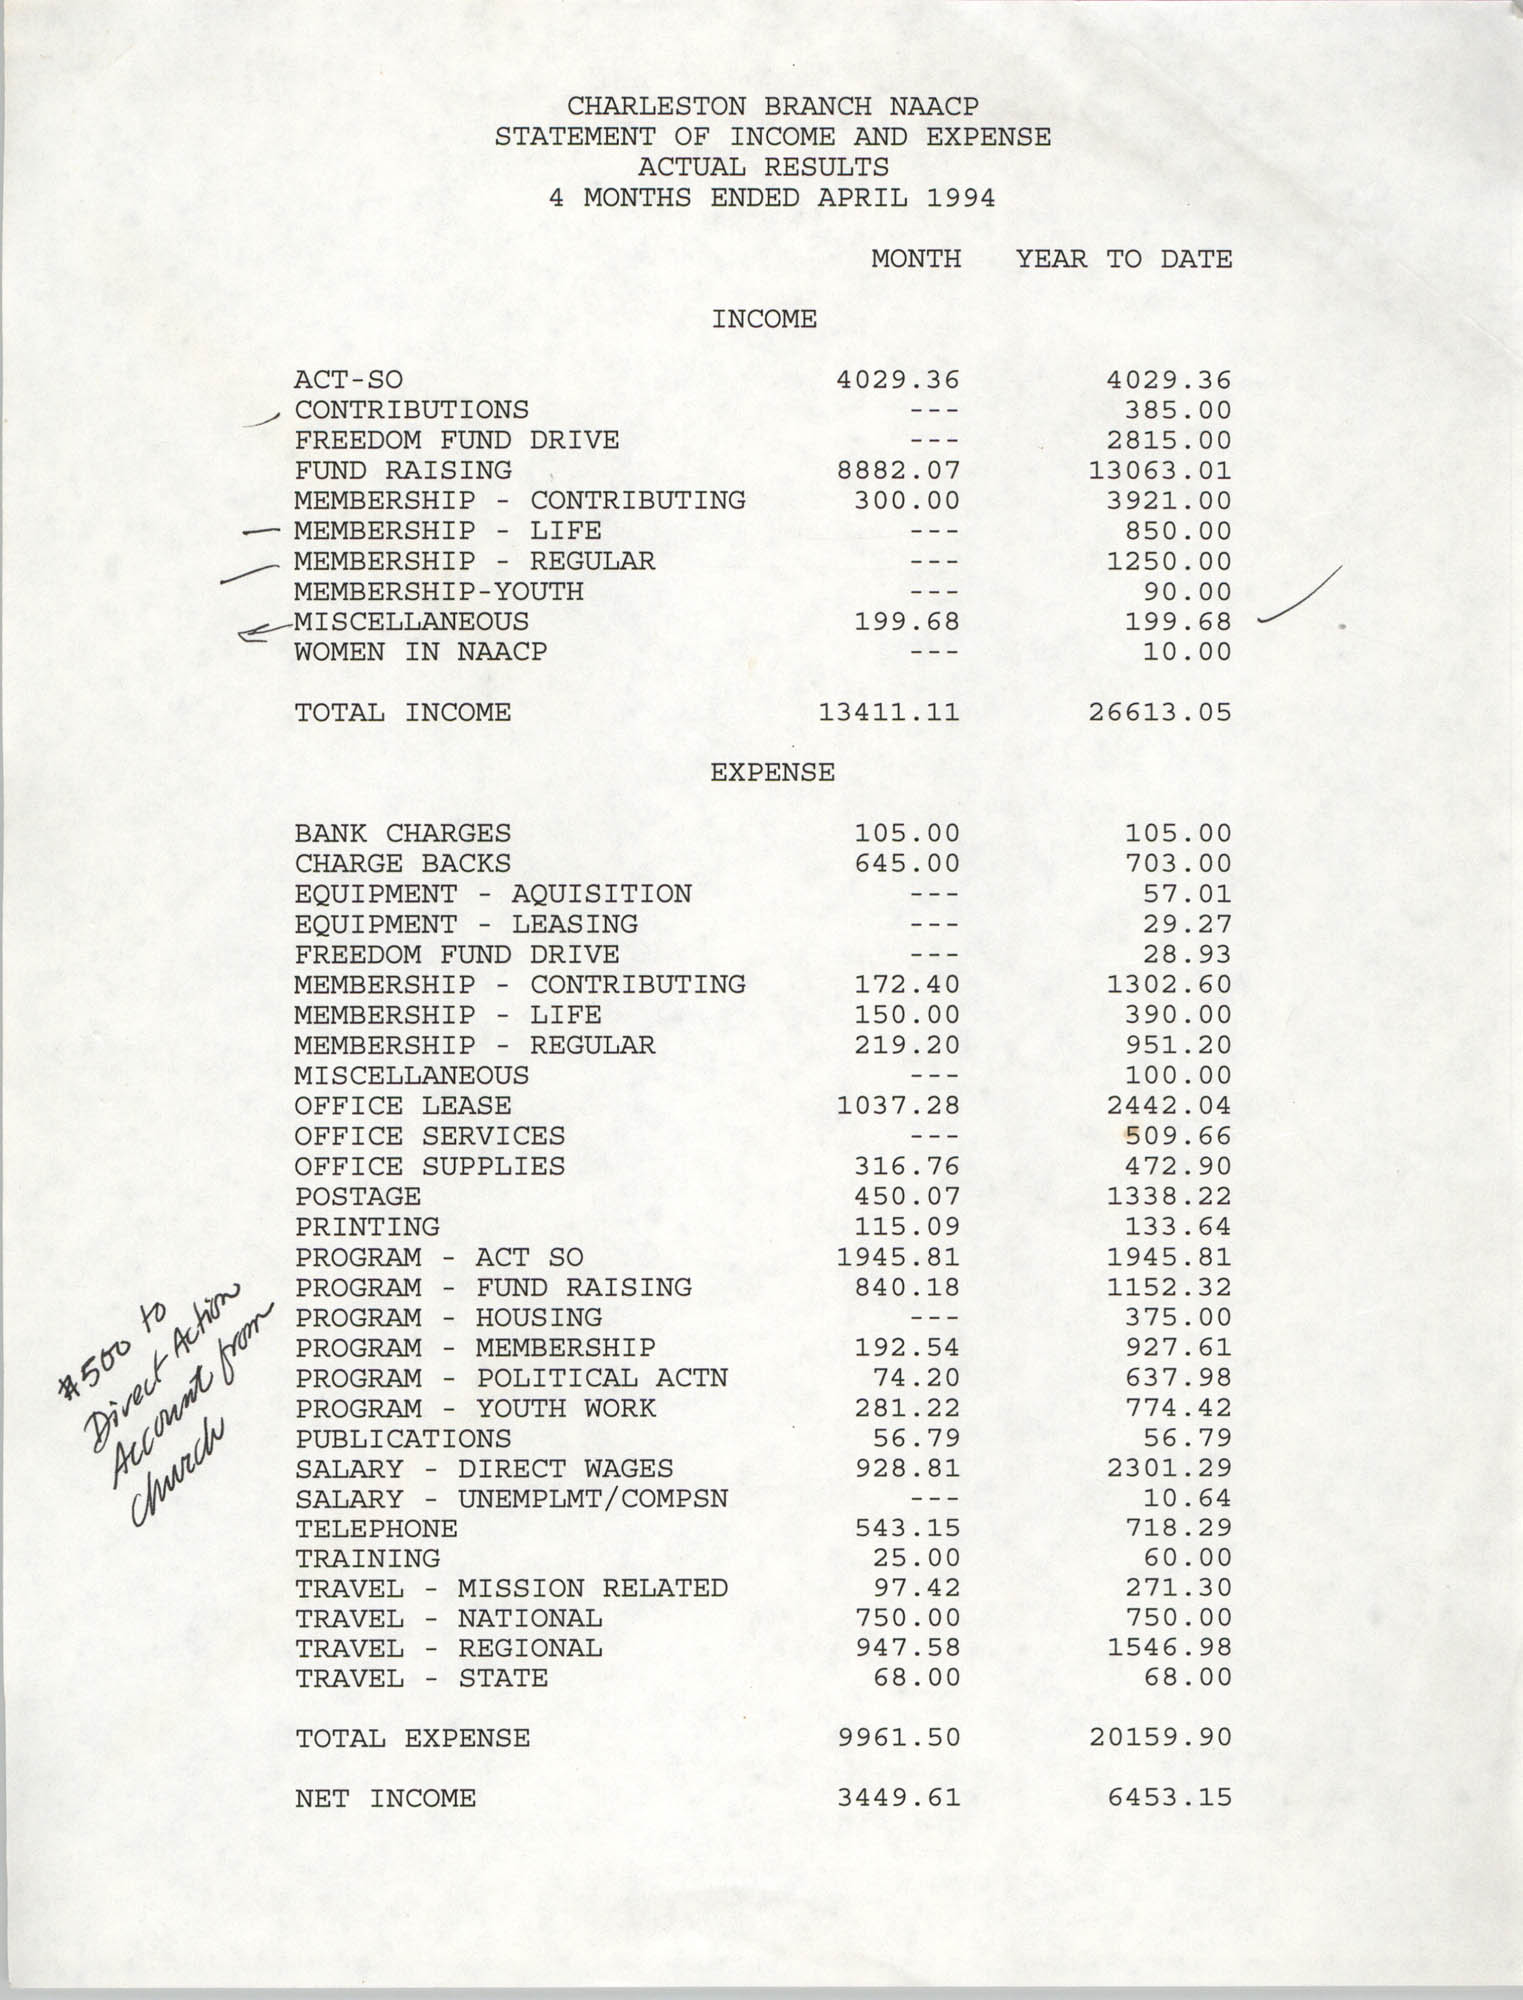 Charleston Branch of the NAACP Statement of Income and Expense, April 1994